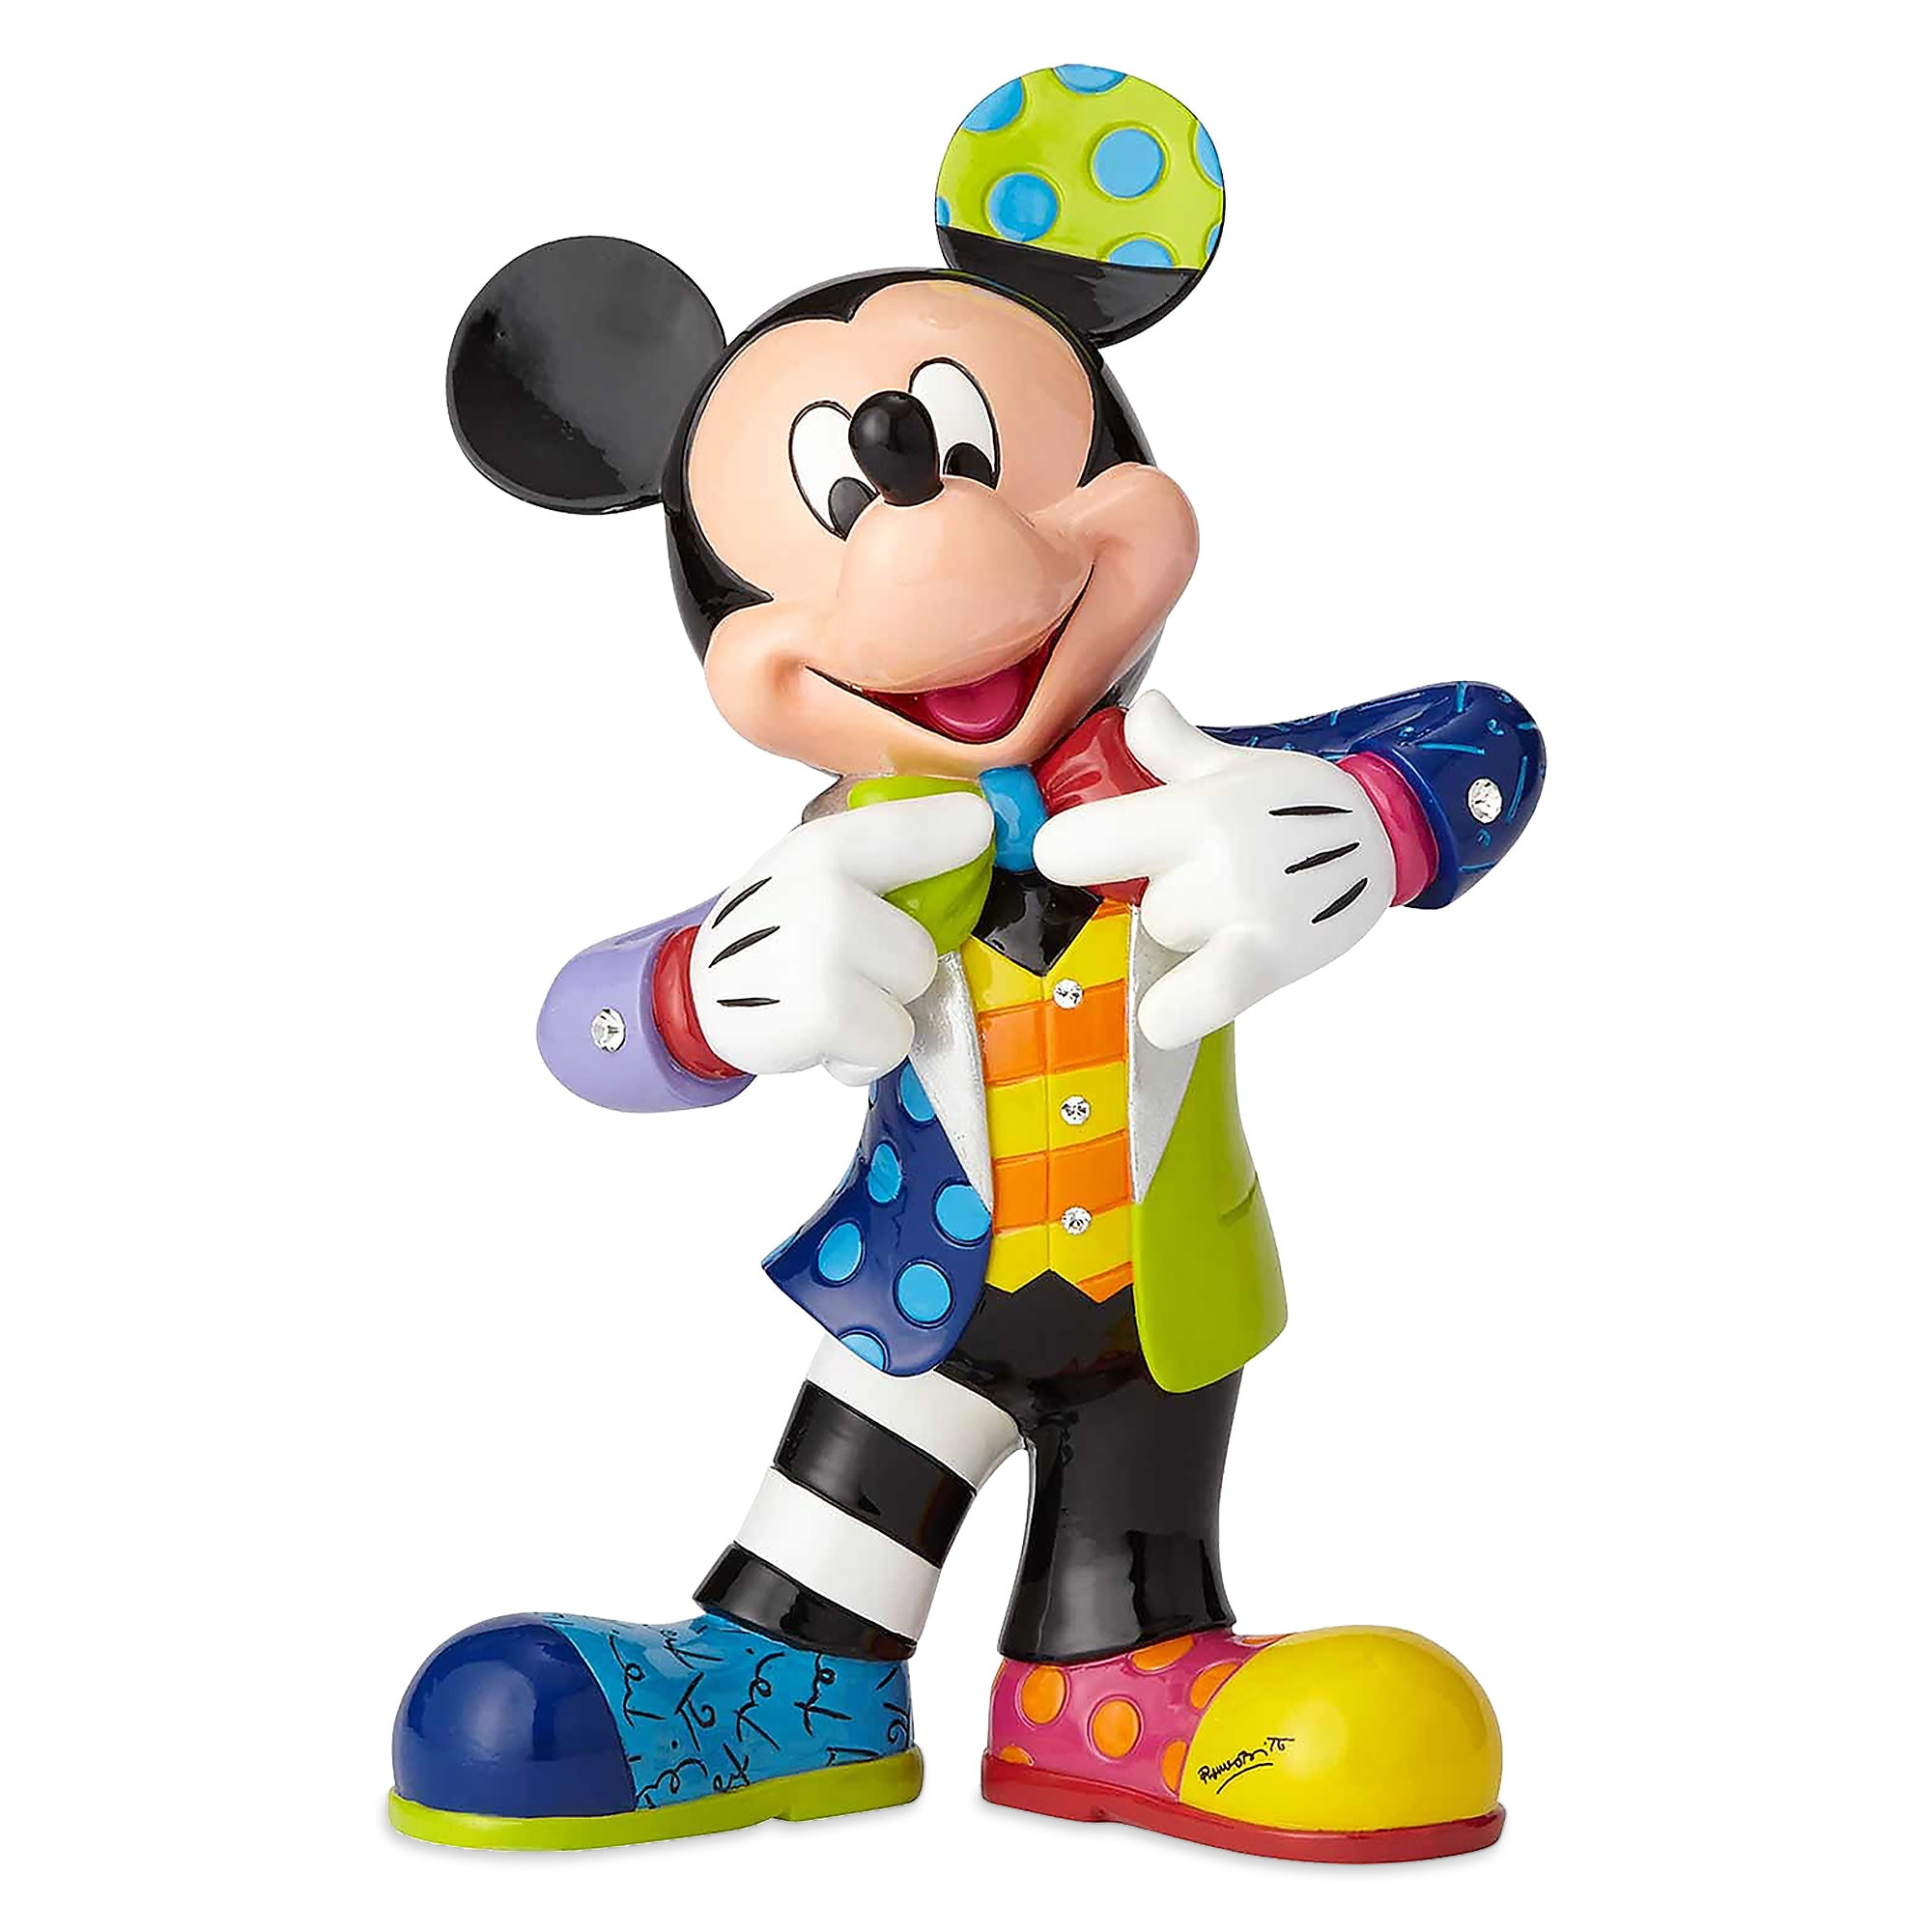 Mickey Mouse Bling Figure by Britto - 10 1/4'' H